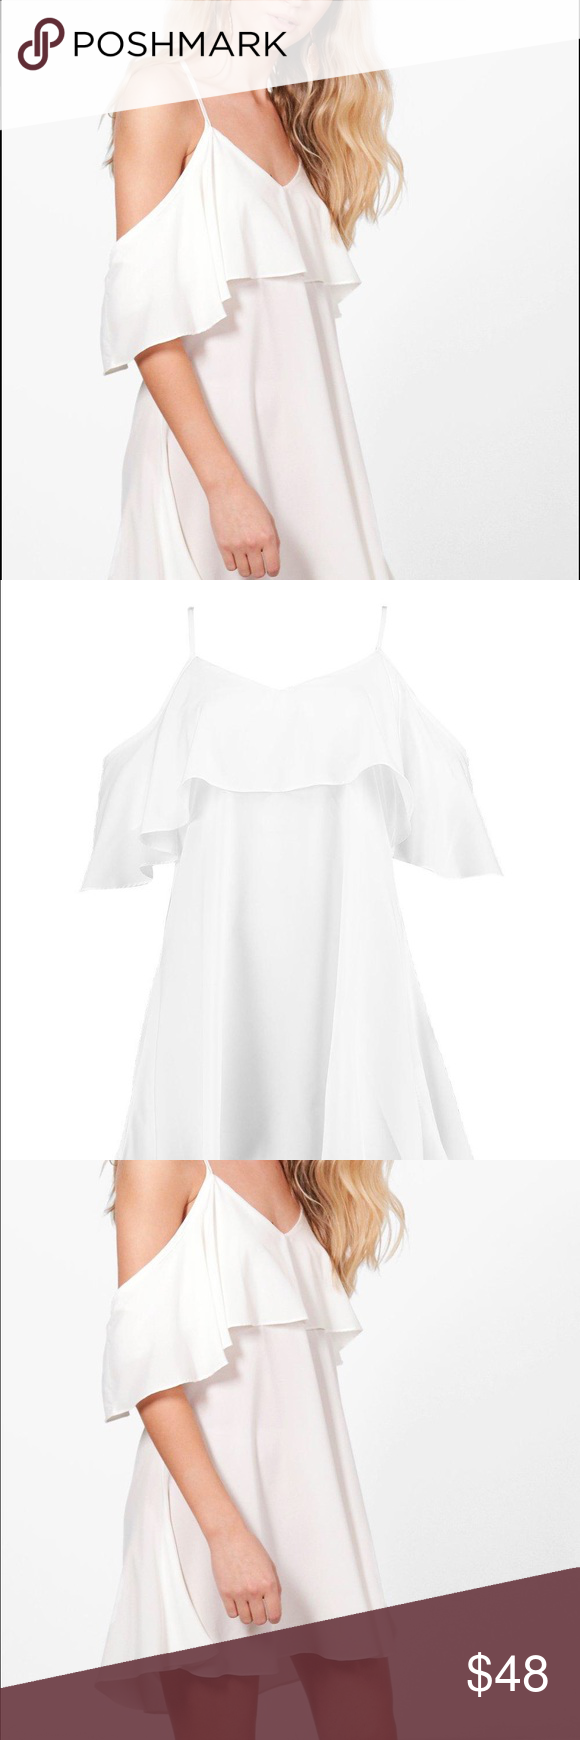 White cold shoulder ruffle mini dress Ruffle cold shoulder mini dress, soft 100% polyester material, model wears size 4 ASOS Dresses Mini